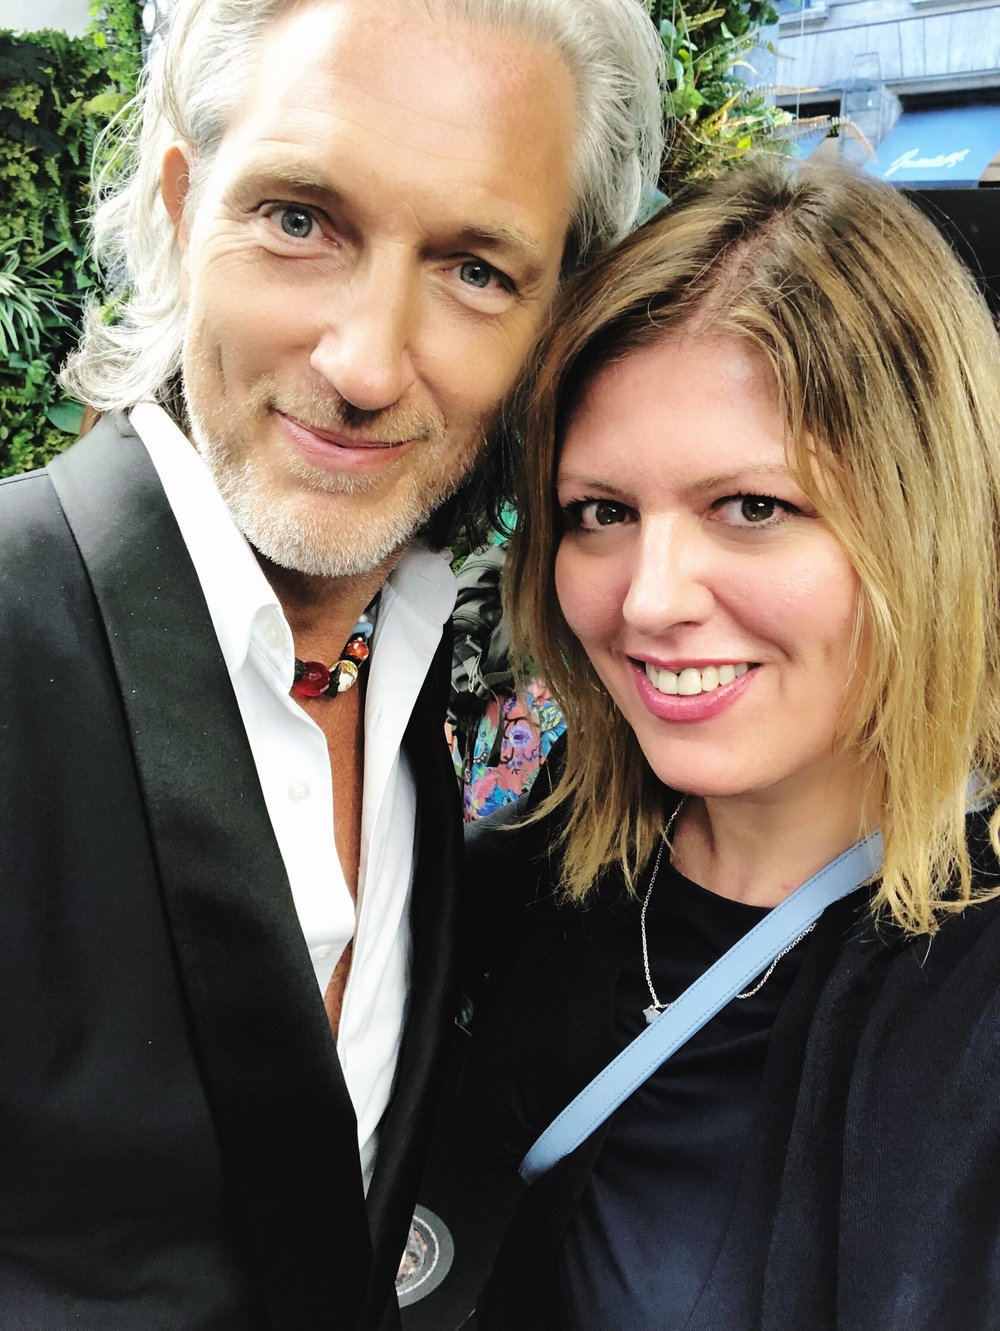 Marcel Wanders and Holly Becker